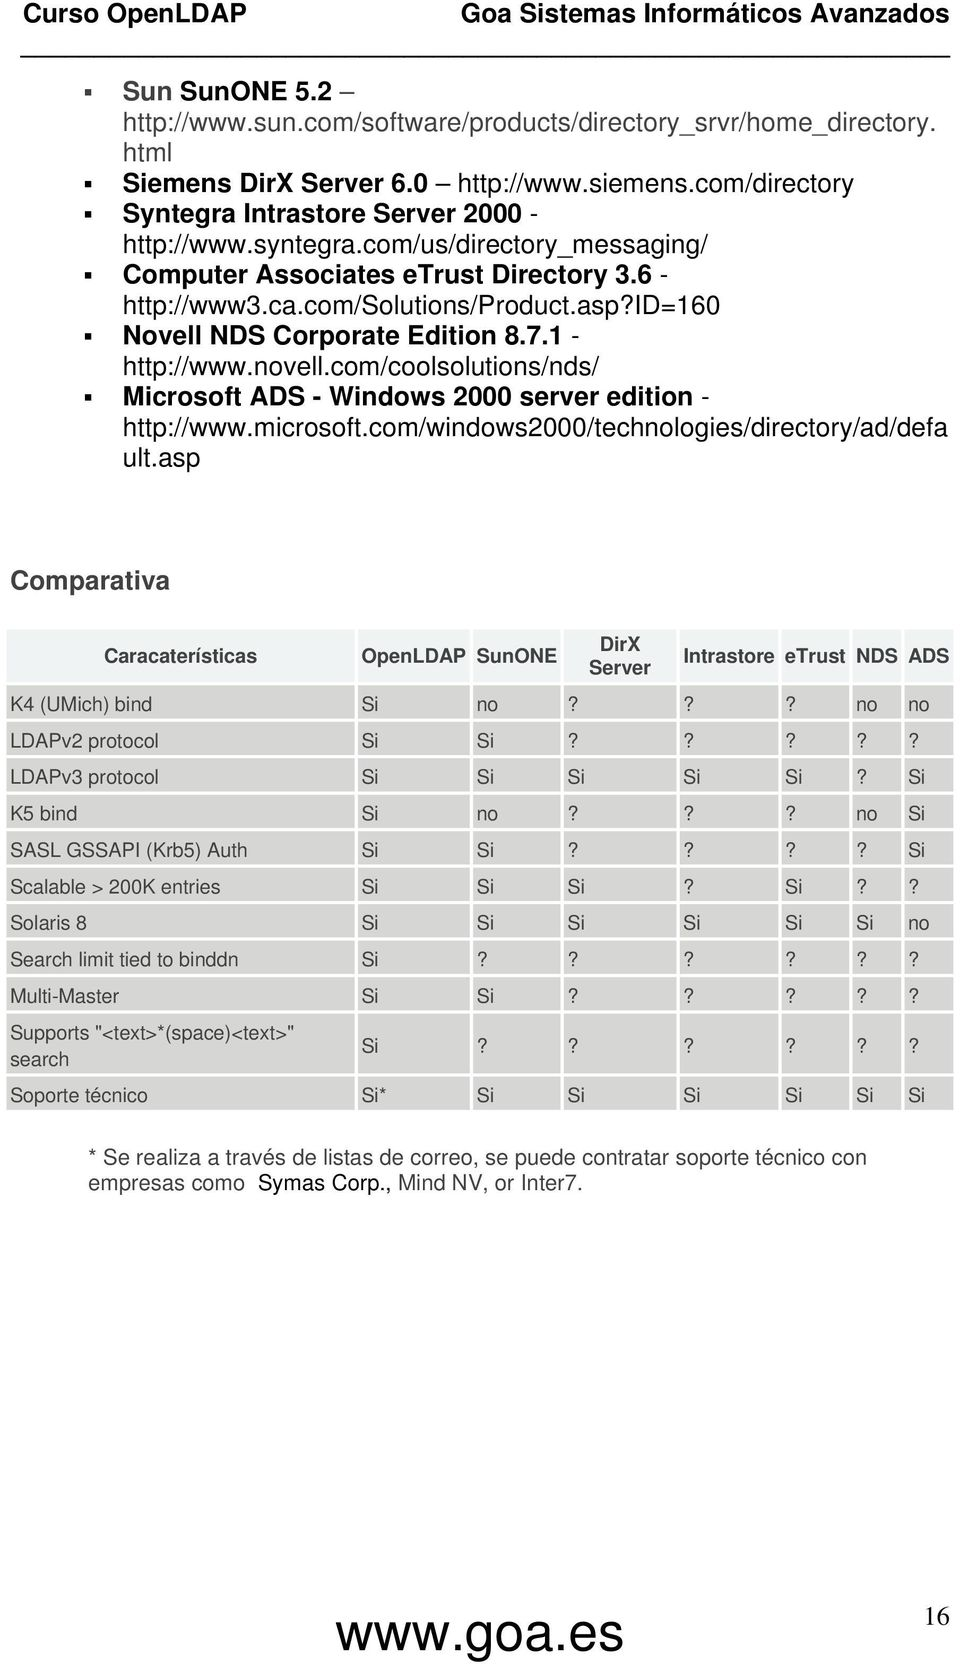 com/coolsolutions/nds/ Microsoft ADS - Windows 2000 server edition - http://www.microsoft.com/windows2000/technologies/directory/ad/defa ult.